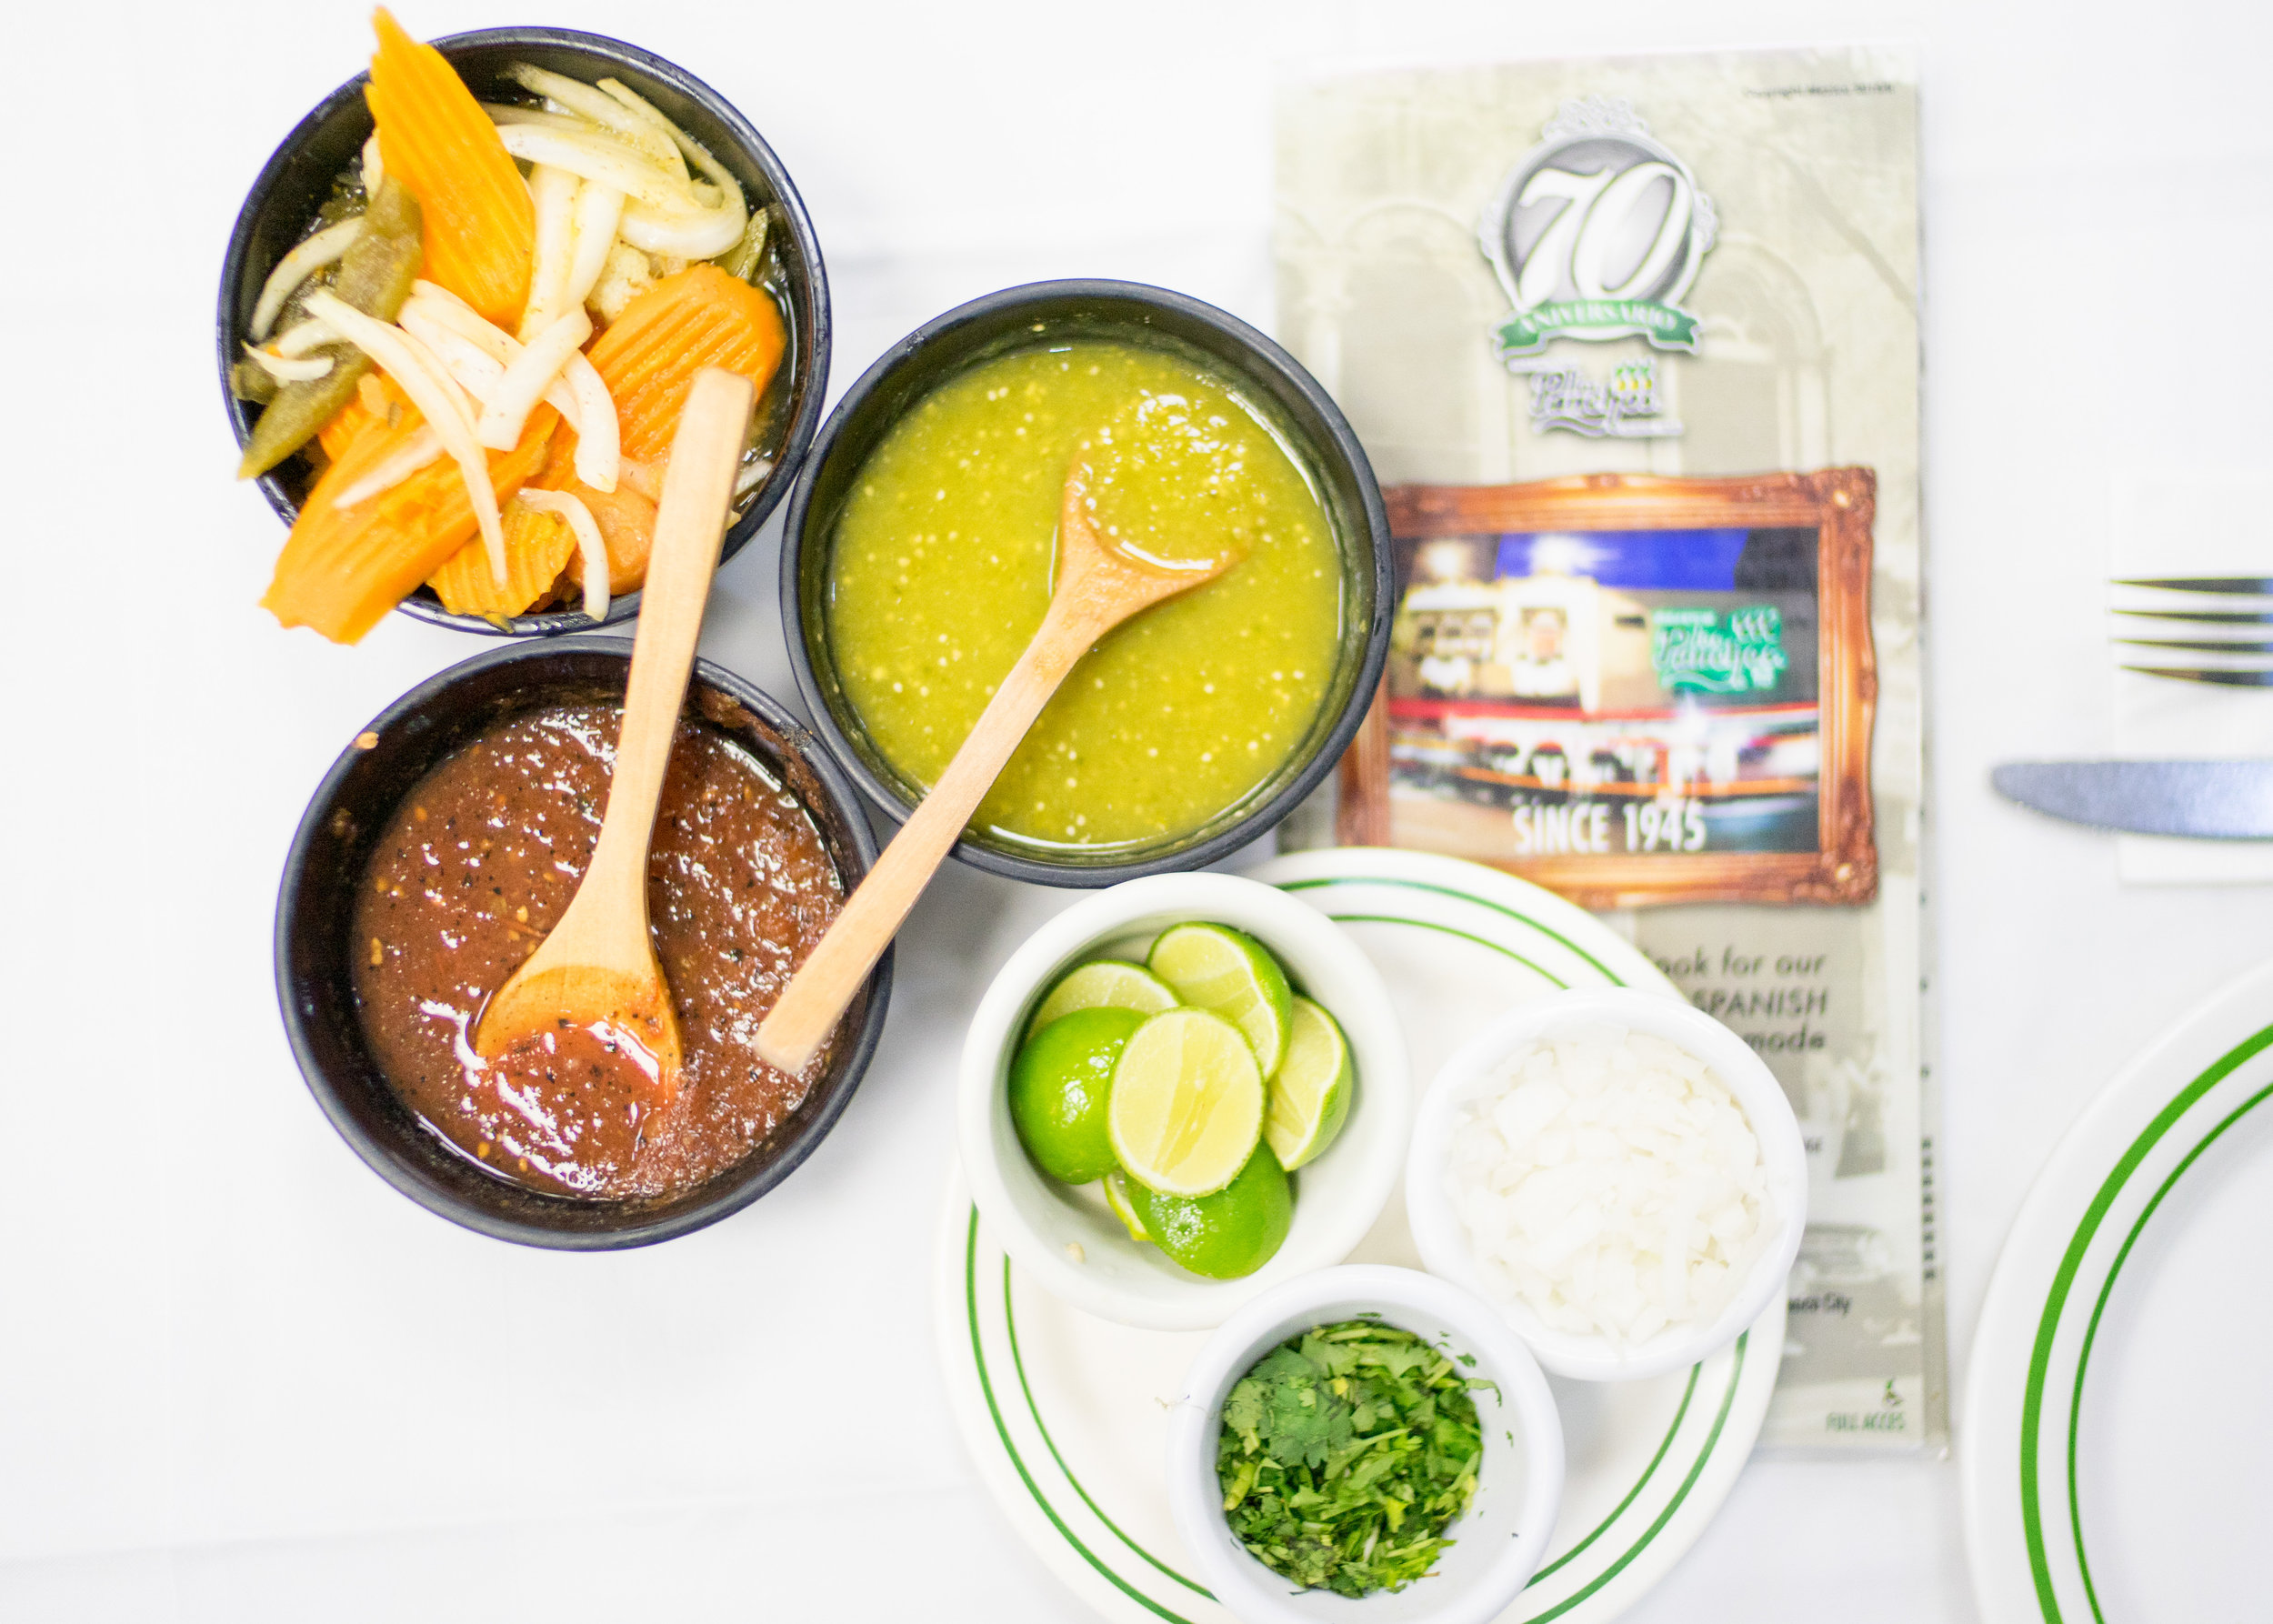 Salsas and condiments that come with every table (the green salsa verde is the spiciest of them all!)